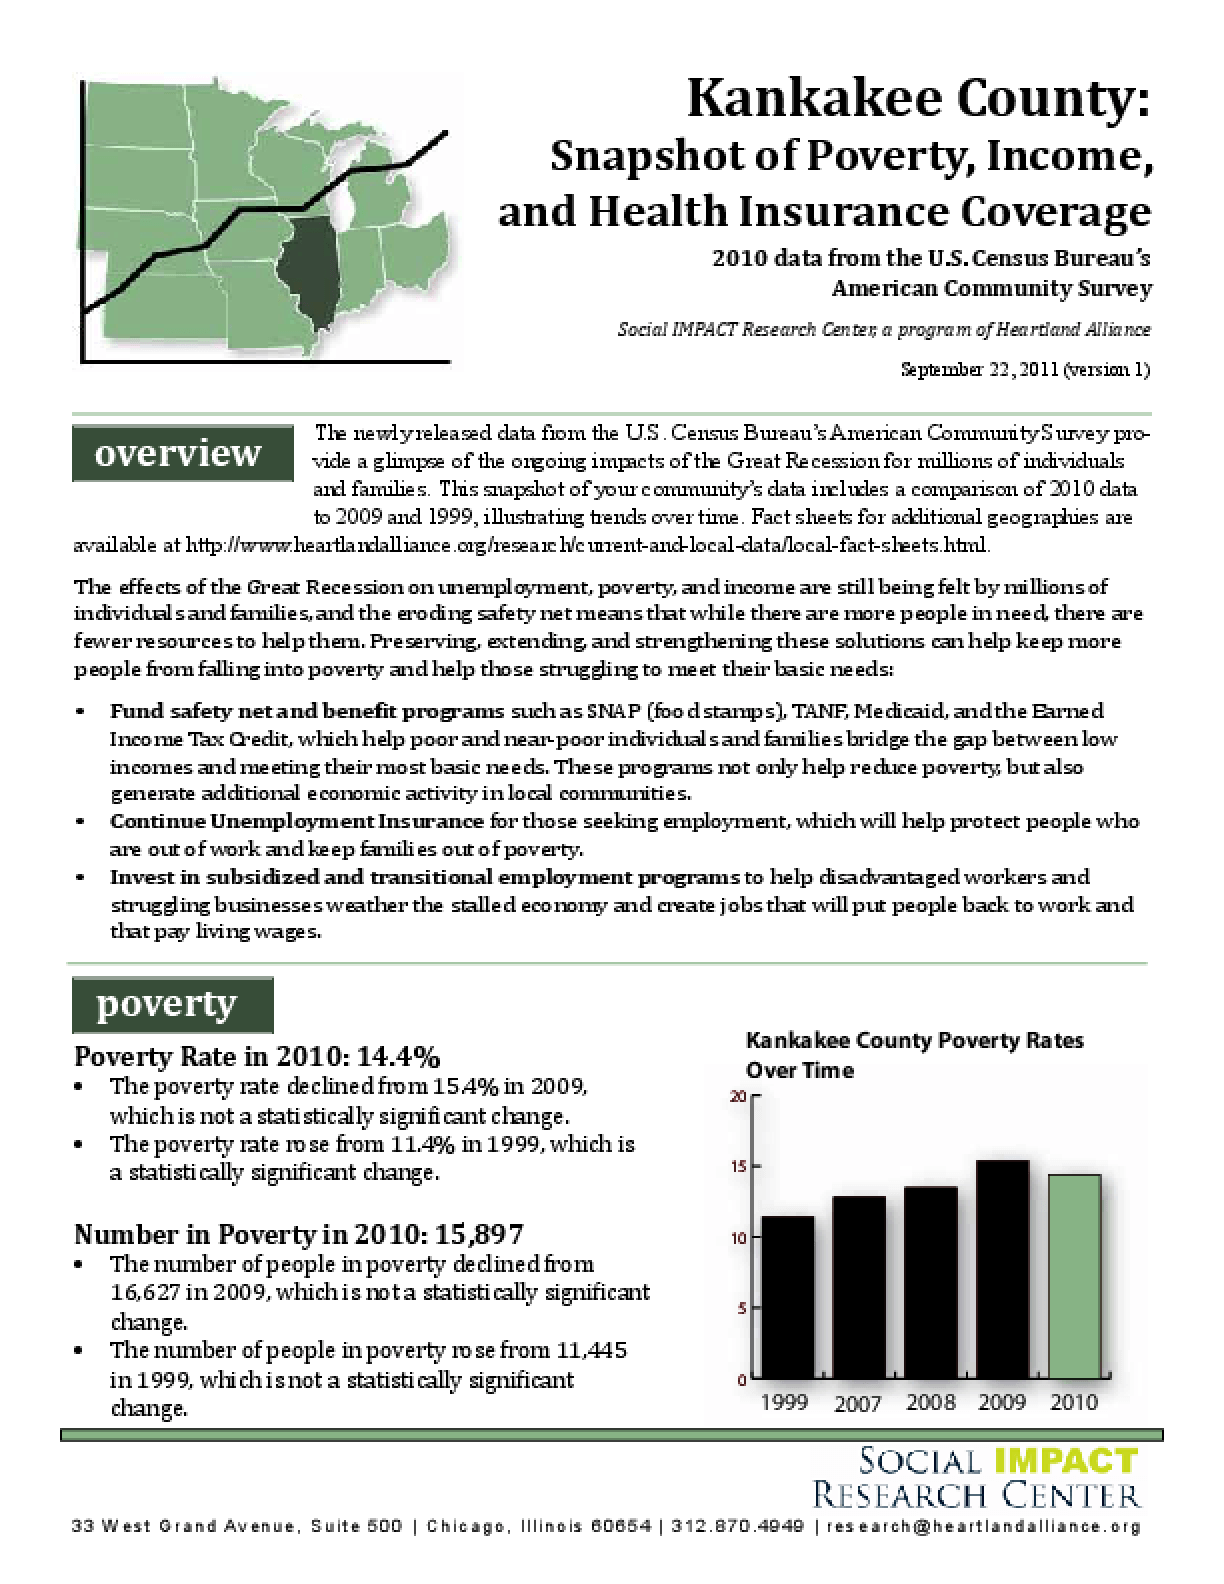 Kankakee: Snapshot of Poverty, Income, and Health Insurance Coverage